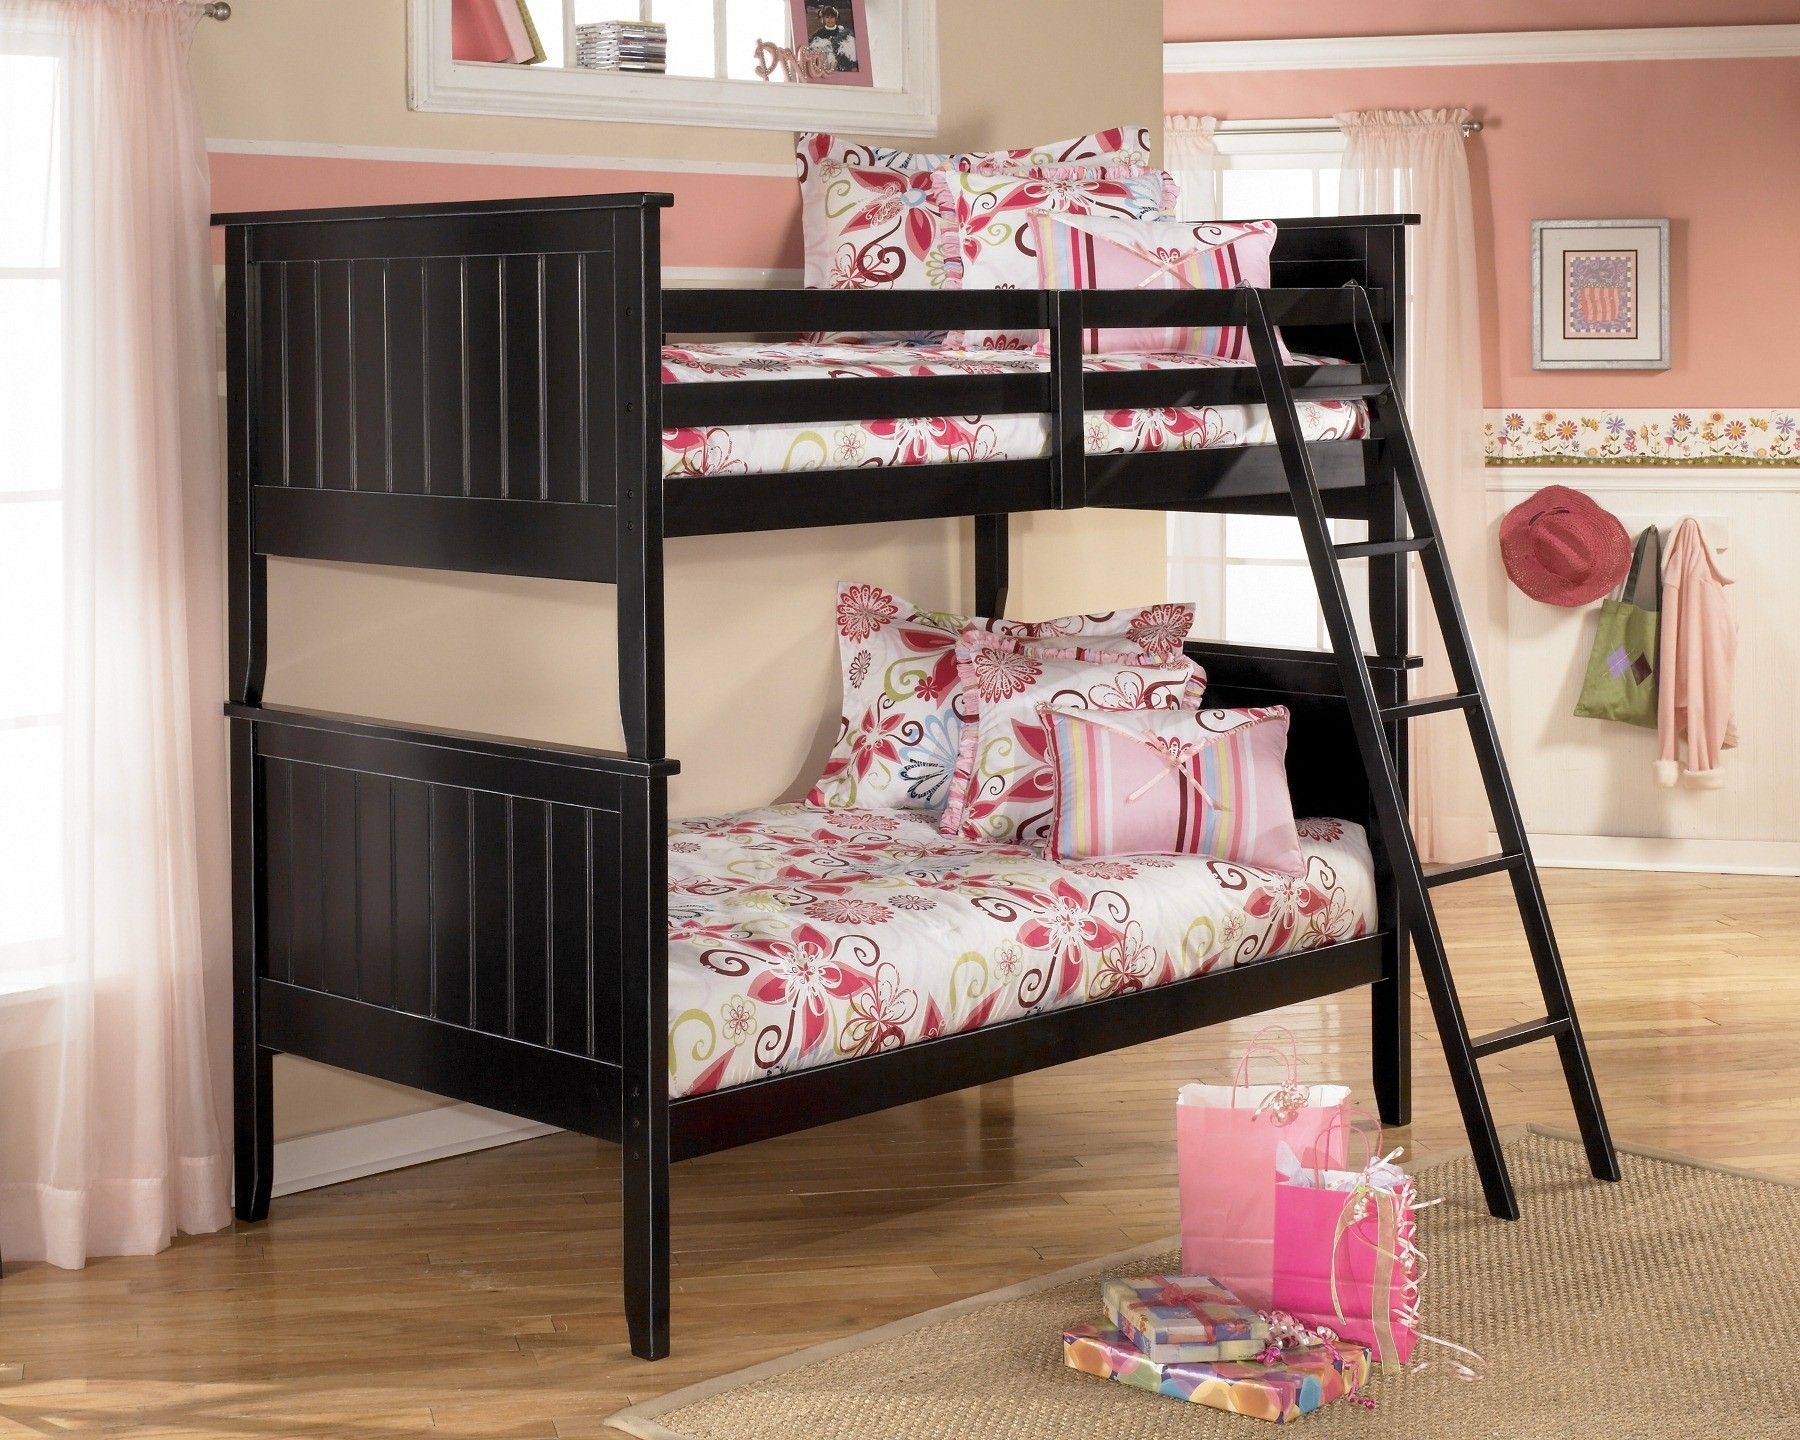 Jaidyn Youth Bunk Bedroom Set Black bunk beds, Bunk beds